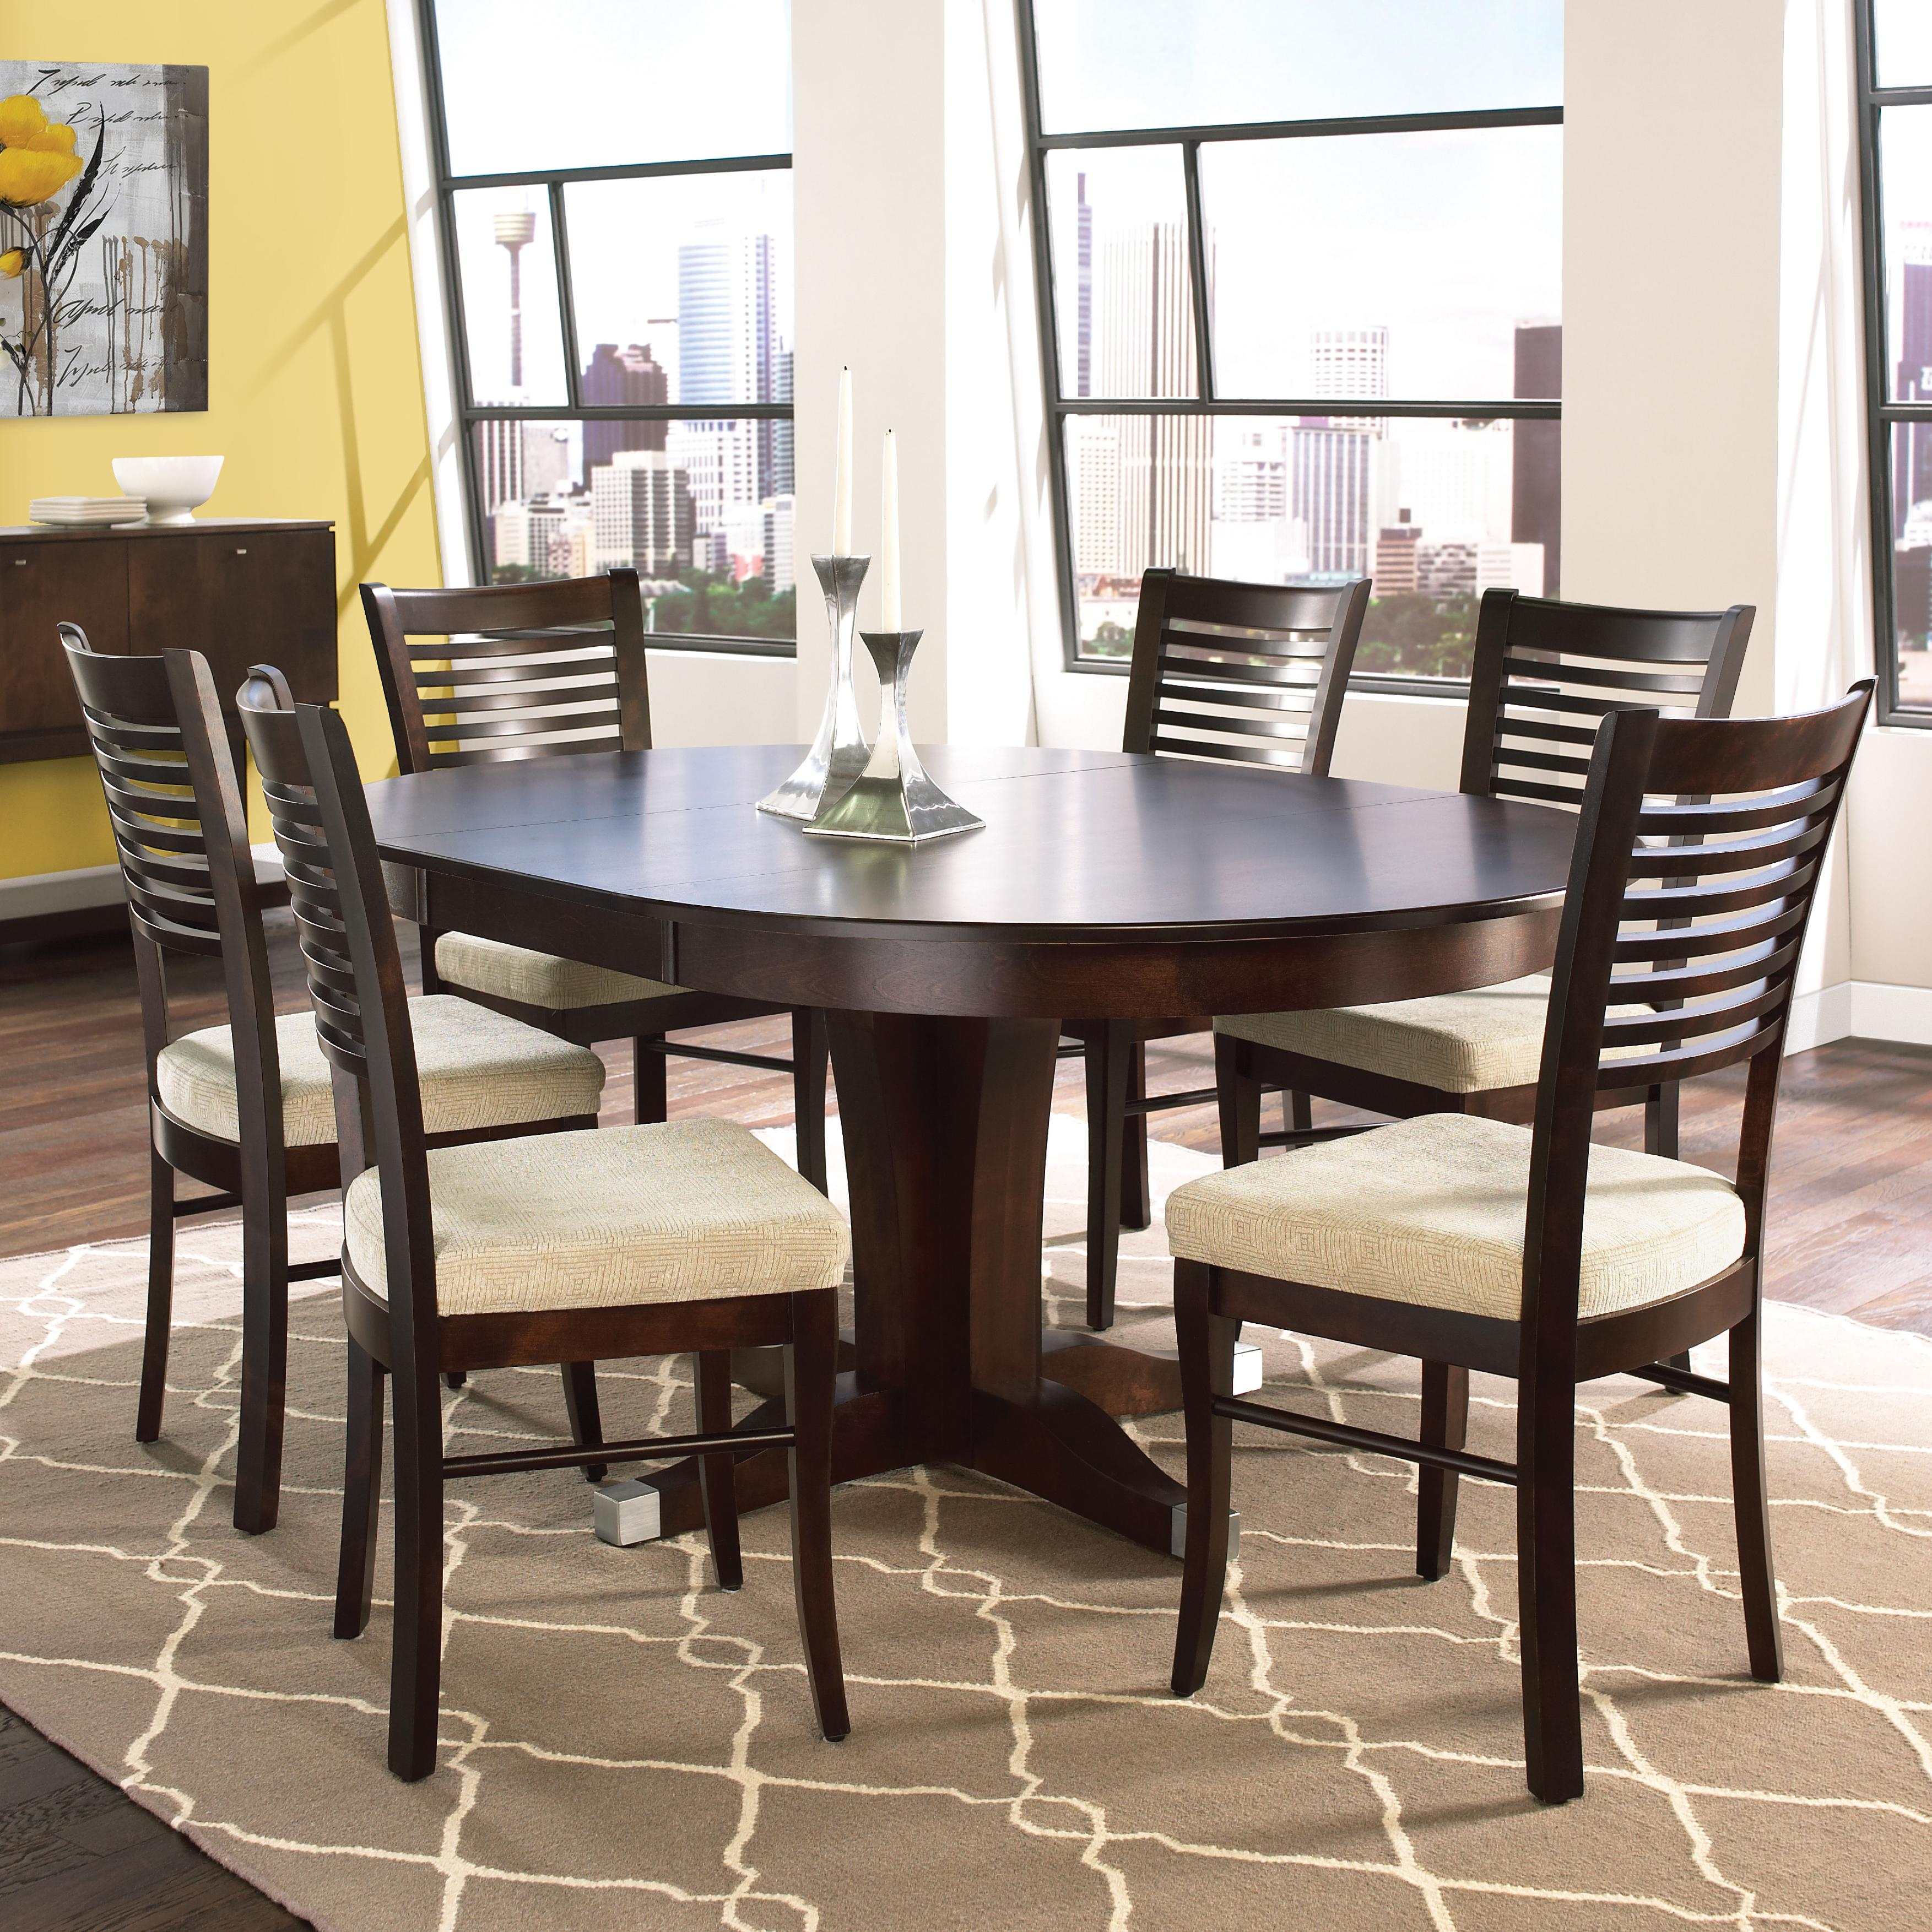 canadel custom dining customizable round table with leaf set dinette depot dining 7 or more. Black Bedroom Furniture Sets. Home Design Ideas